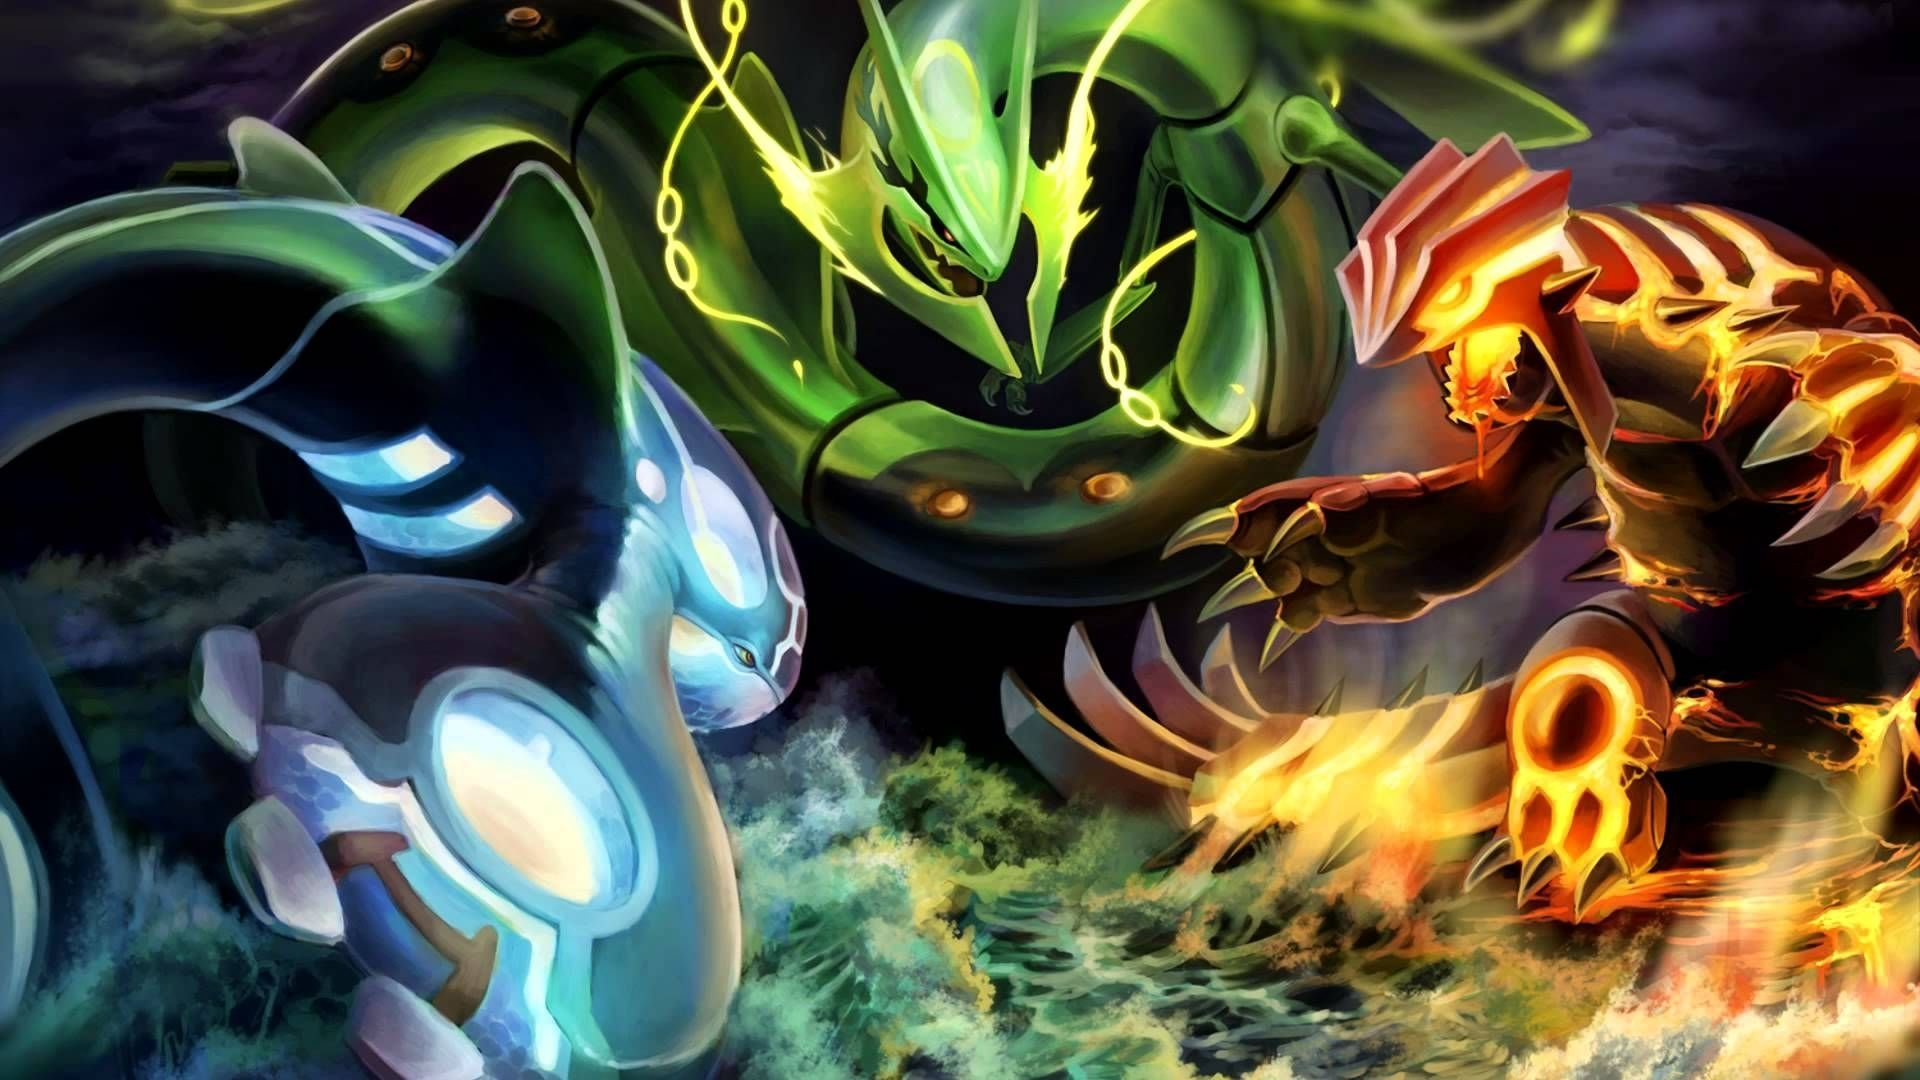 10 New Epic Legendary Pokemon Wallpaper Full Hd 1080p For Pc Desktop 4k Immagini Pokemon Immagini Pokemon